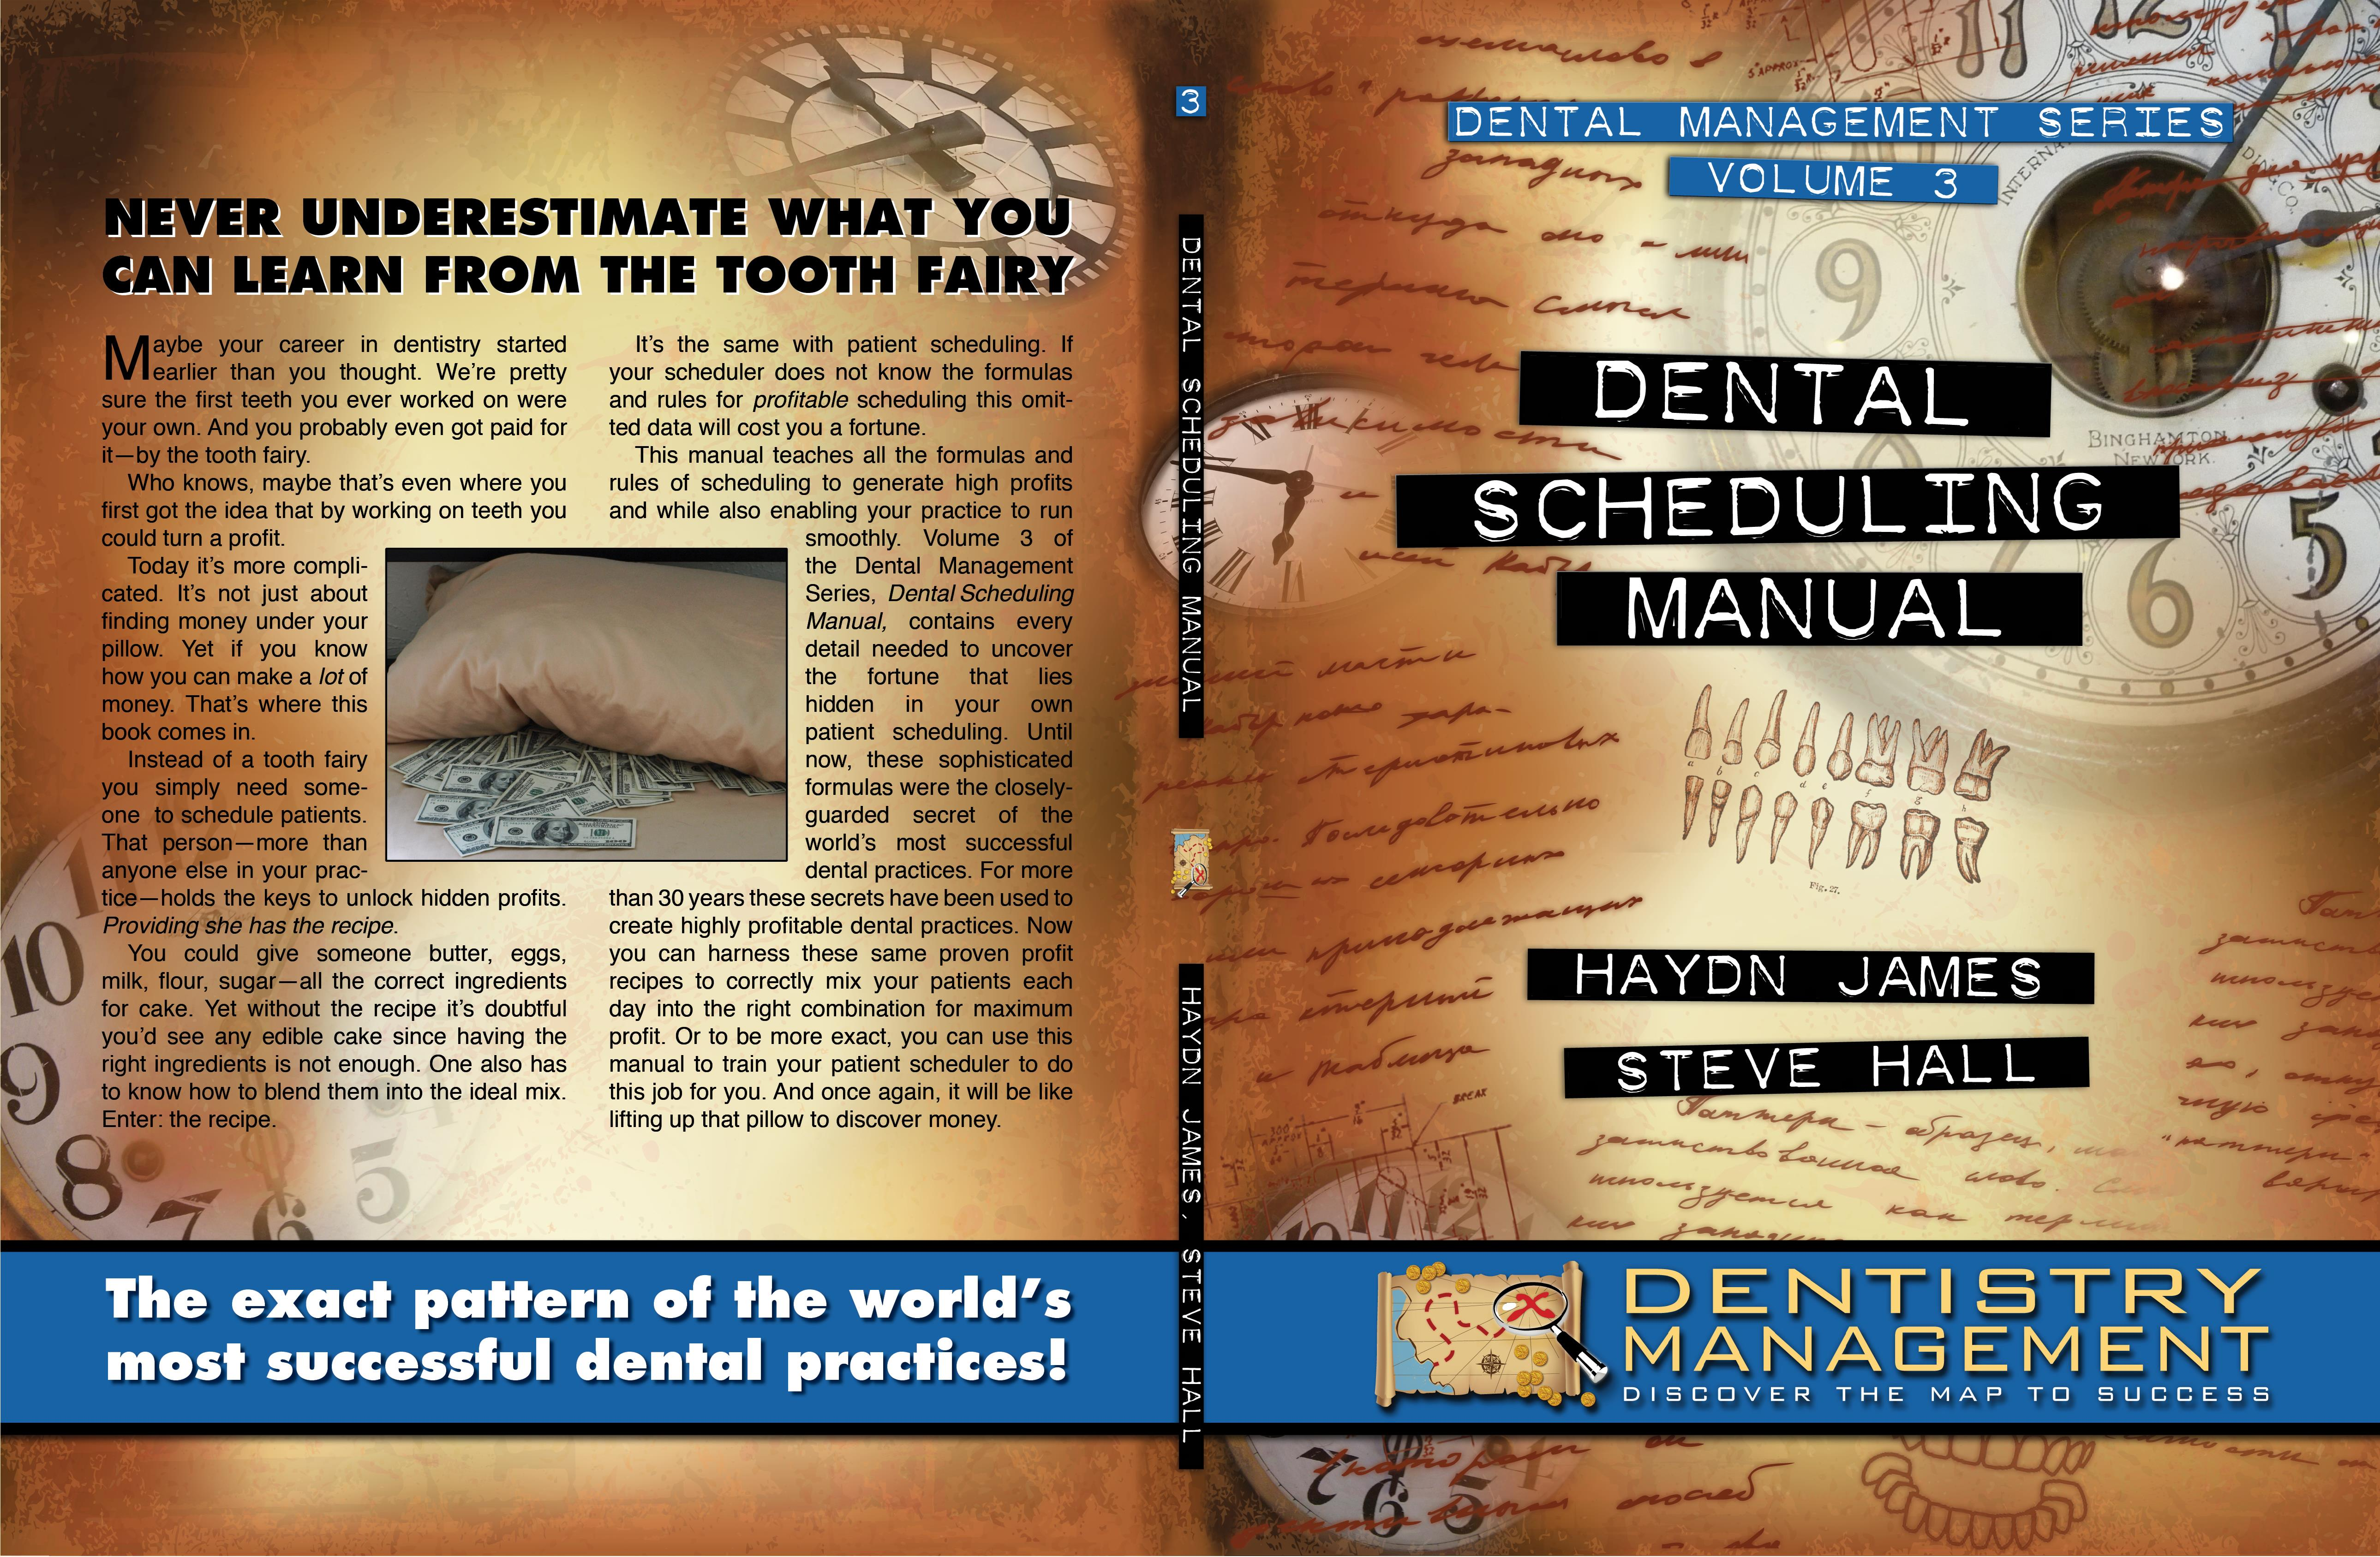 Dental Scheduling Manual cover image